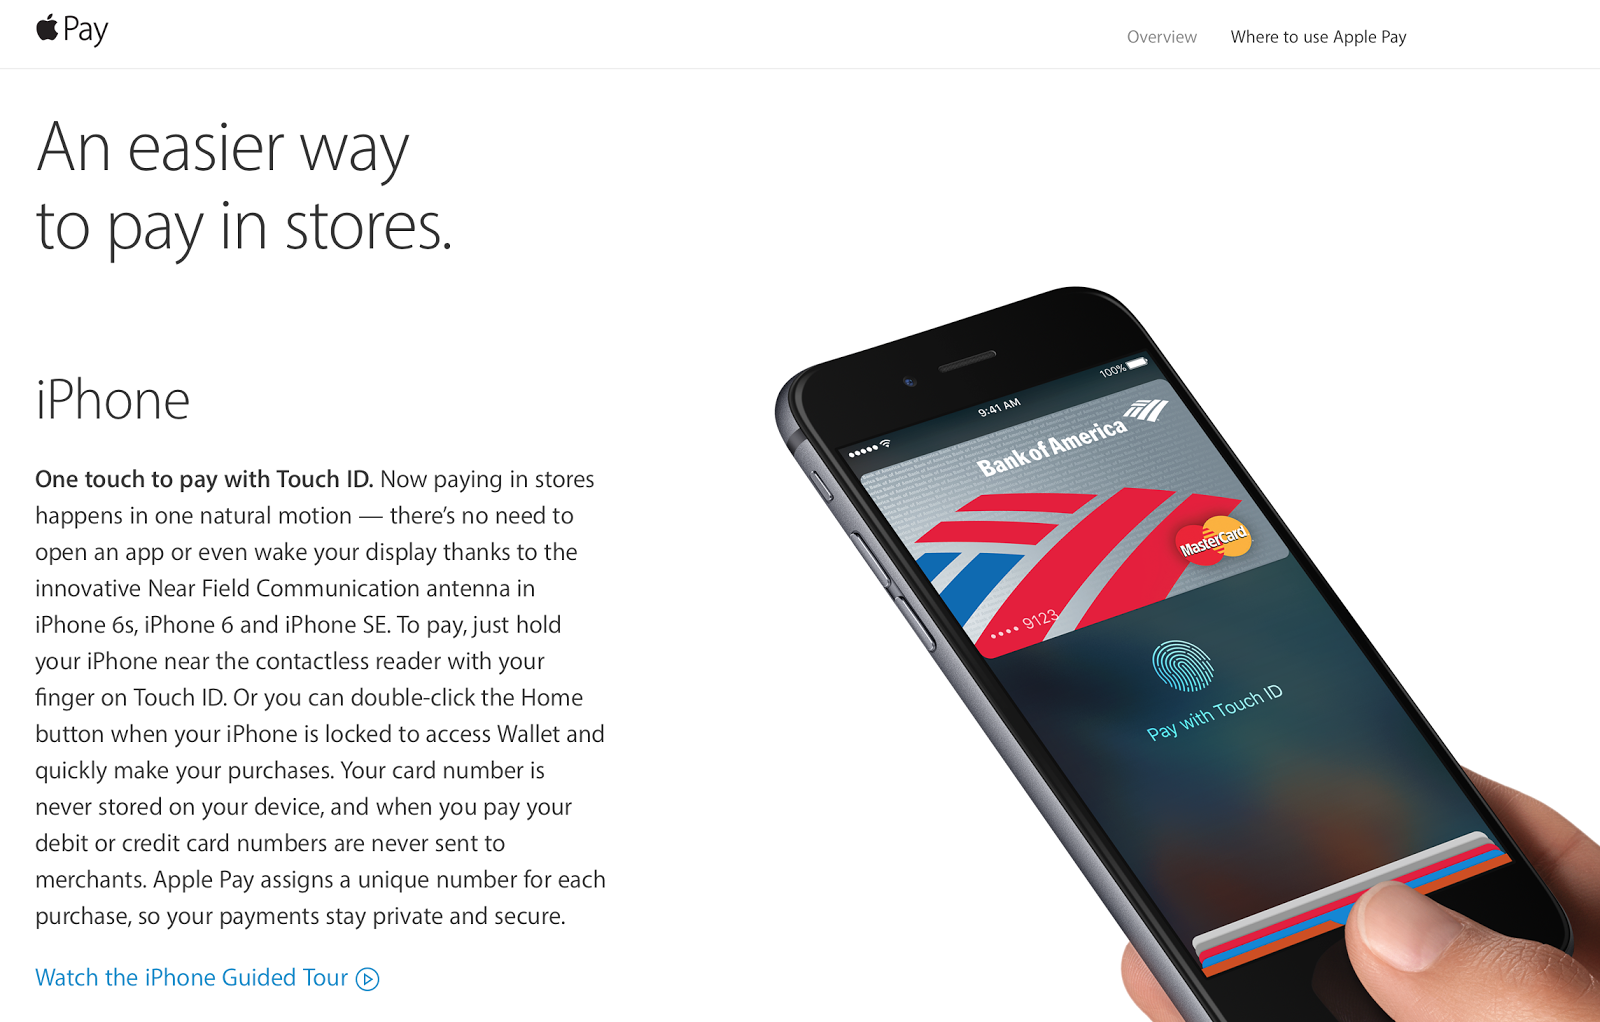 Come attivare Apple Pay in Italia